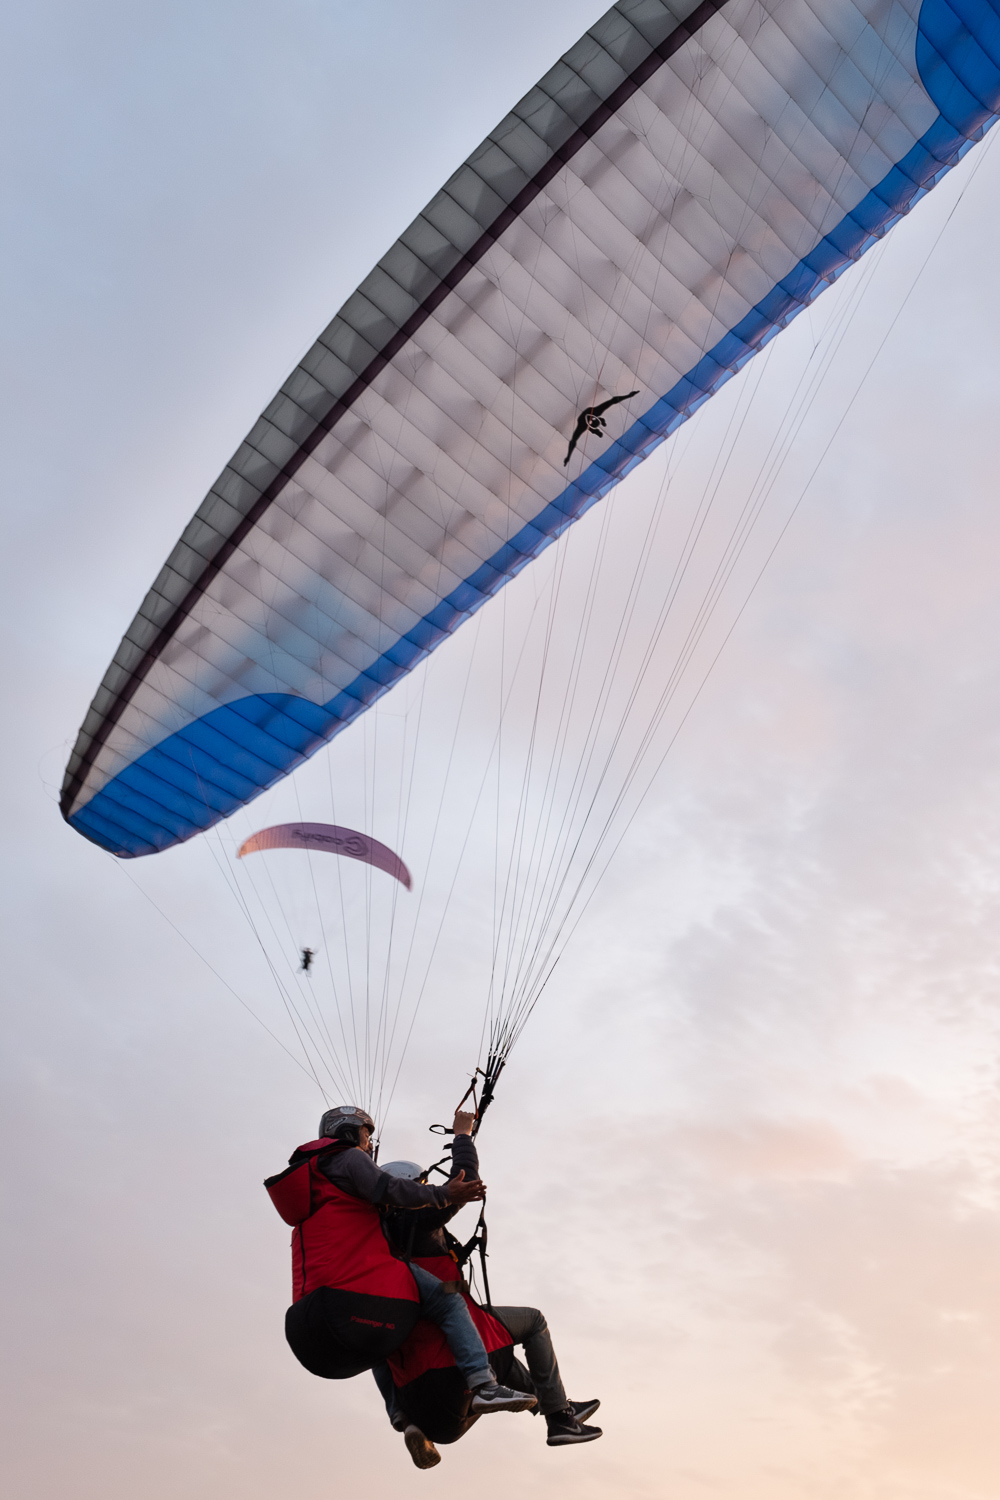 """Paragliding in Lima, Peru. Travel photography and guide by © Natasha Lequepeys for """"And Then I Met Yoko"""". #photoblog #travelblog #travelperu"""